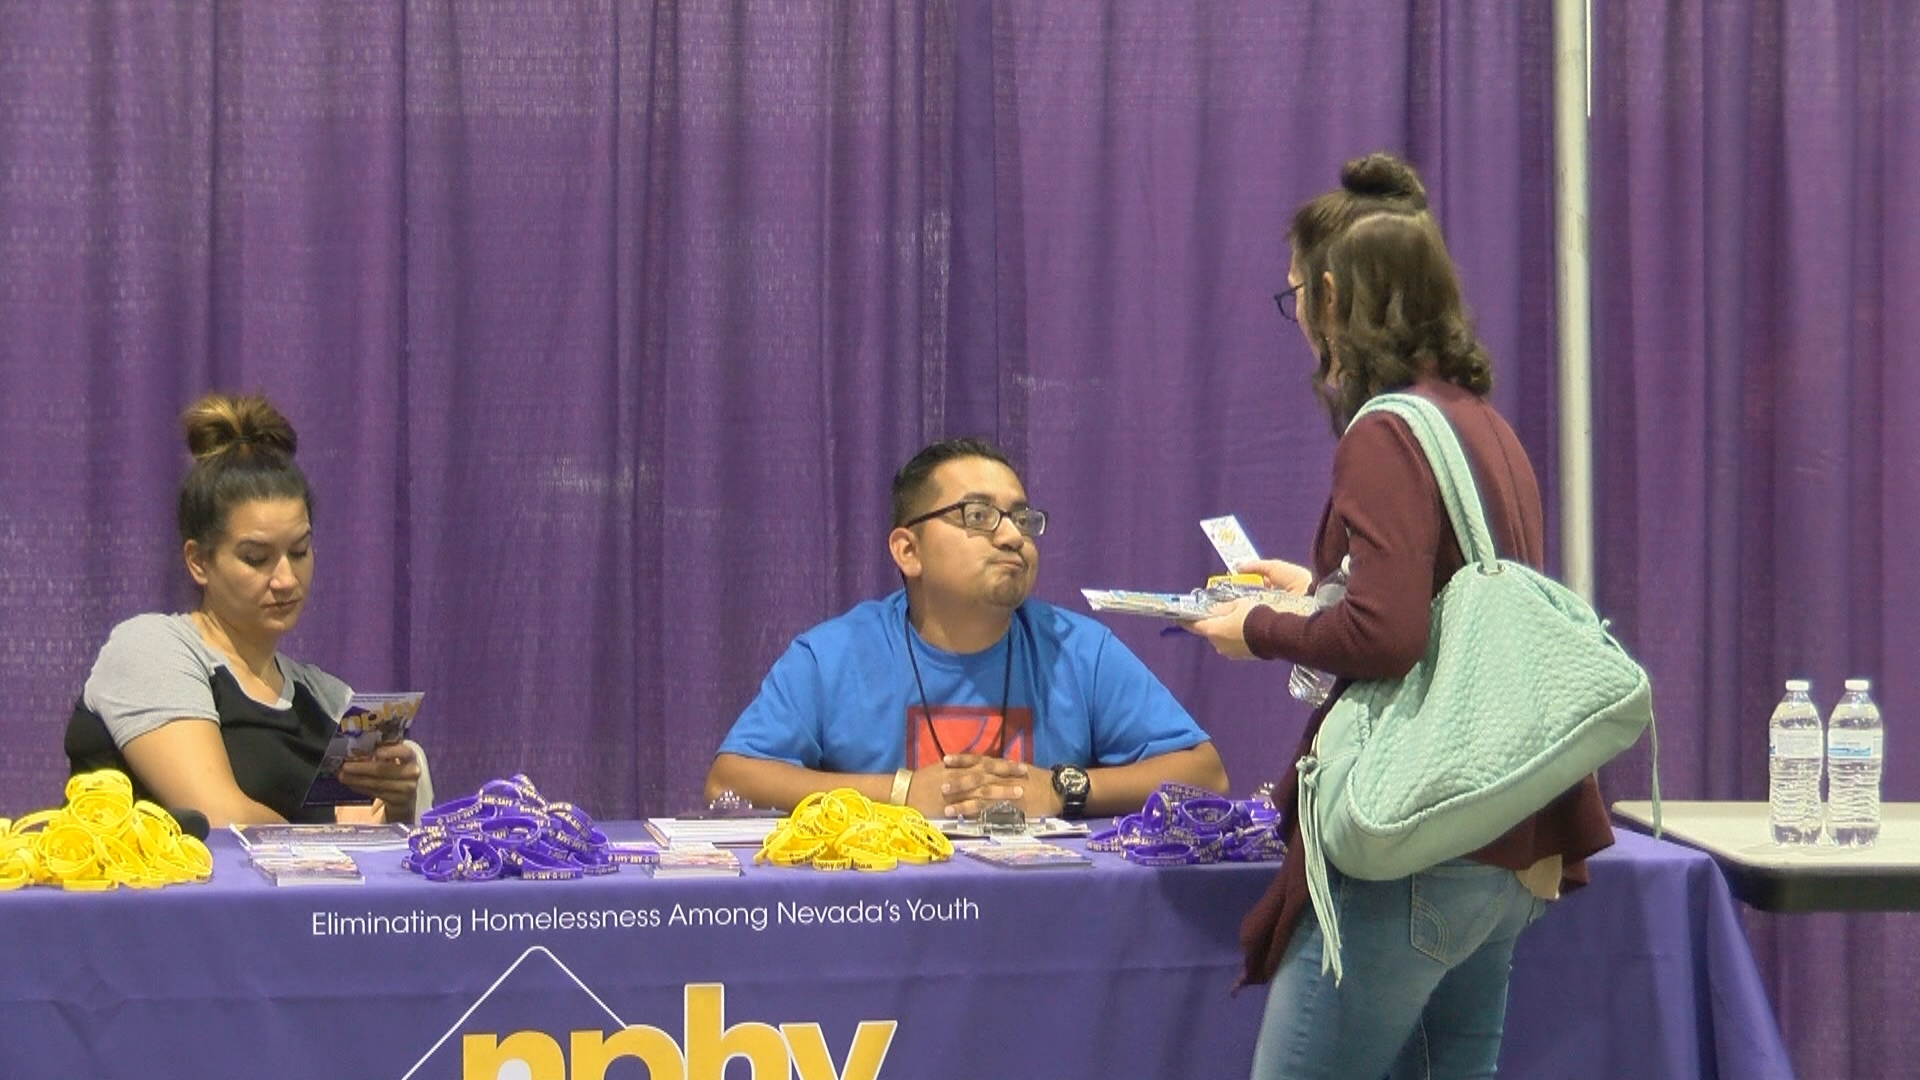 Project Homeless Connect takes place Tuesday, November 14, 2017, at Cashman Center in Las Vegas. The event's purpose is to bring needed services in one, easily accessed location to help individuals overcome barriers to housing and self –sufficiency. (Erin Johnson/KSNV)